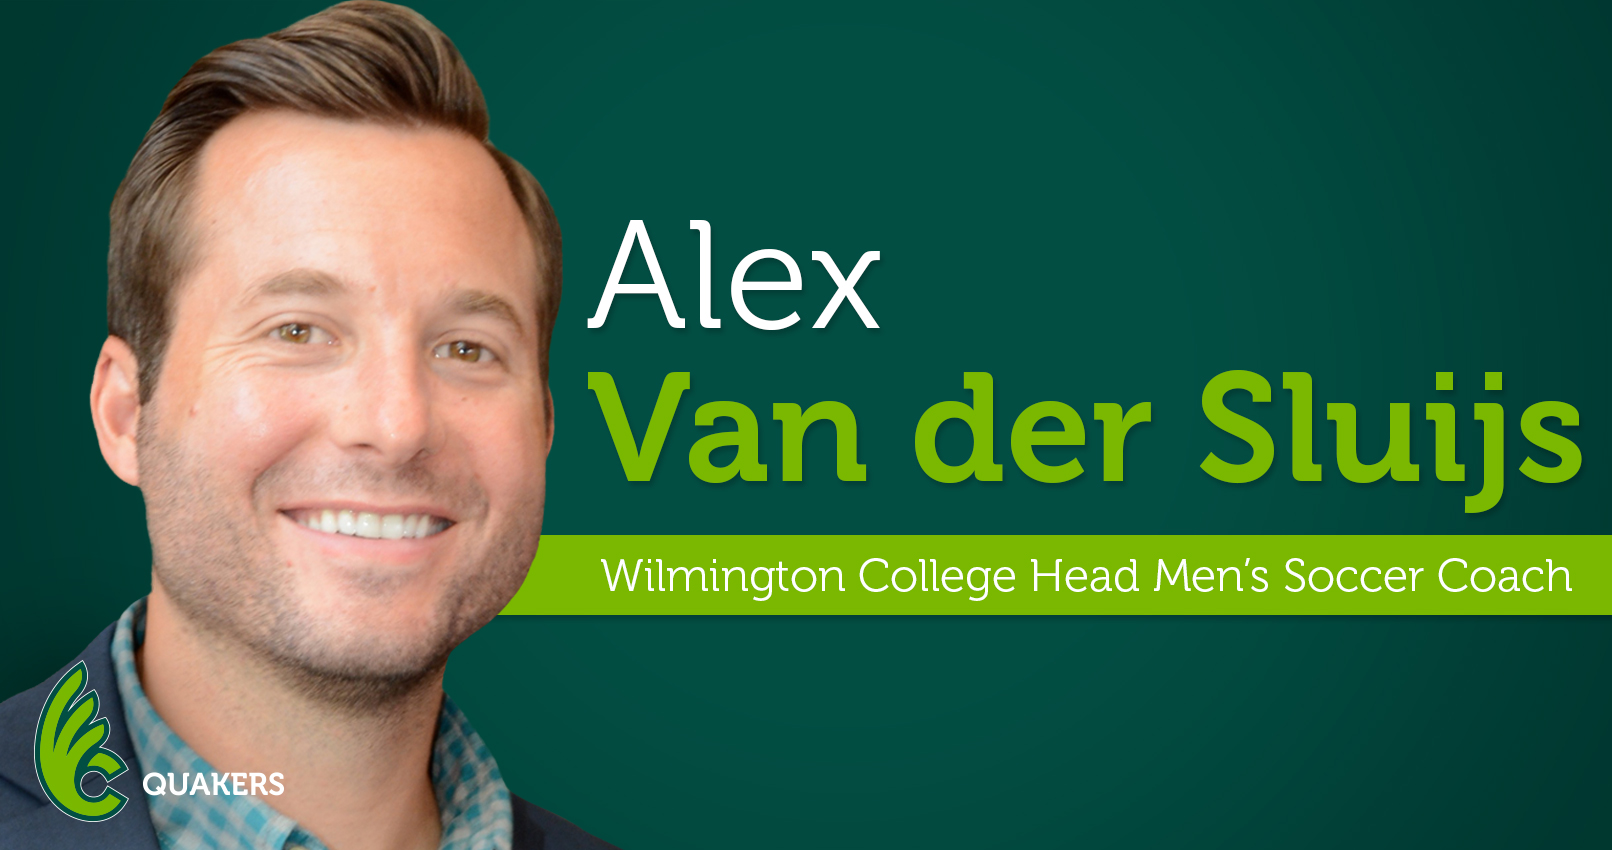 Alex Van der Sluijs Named Head Men's Soccer Coach